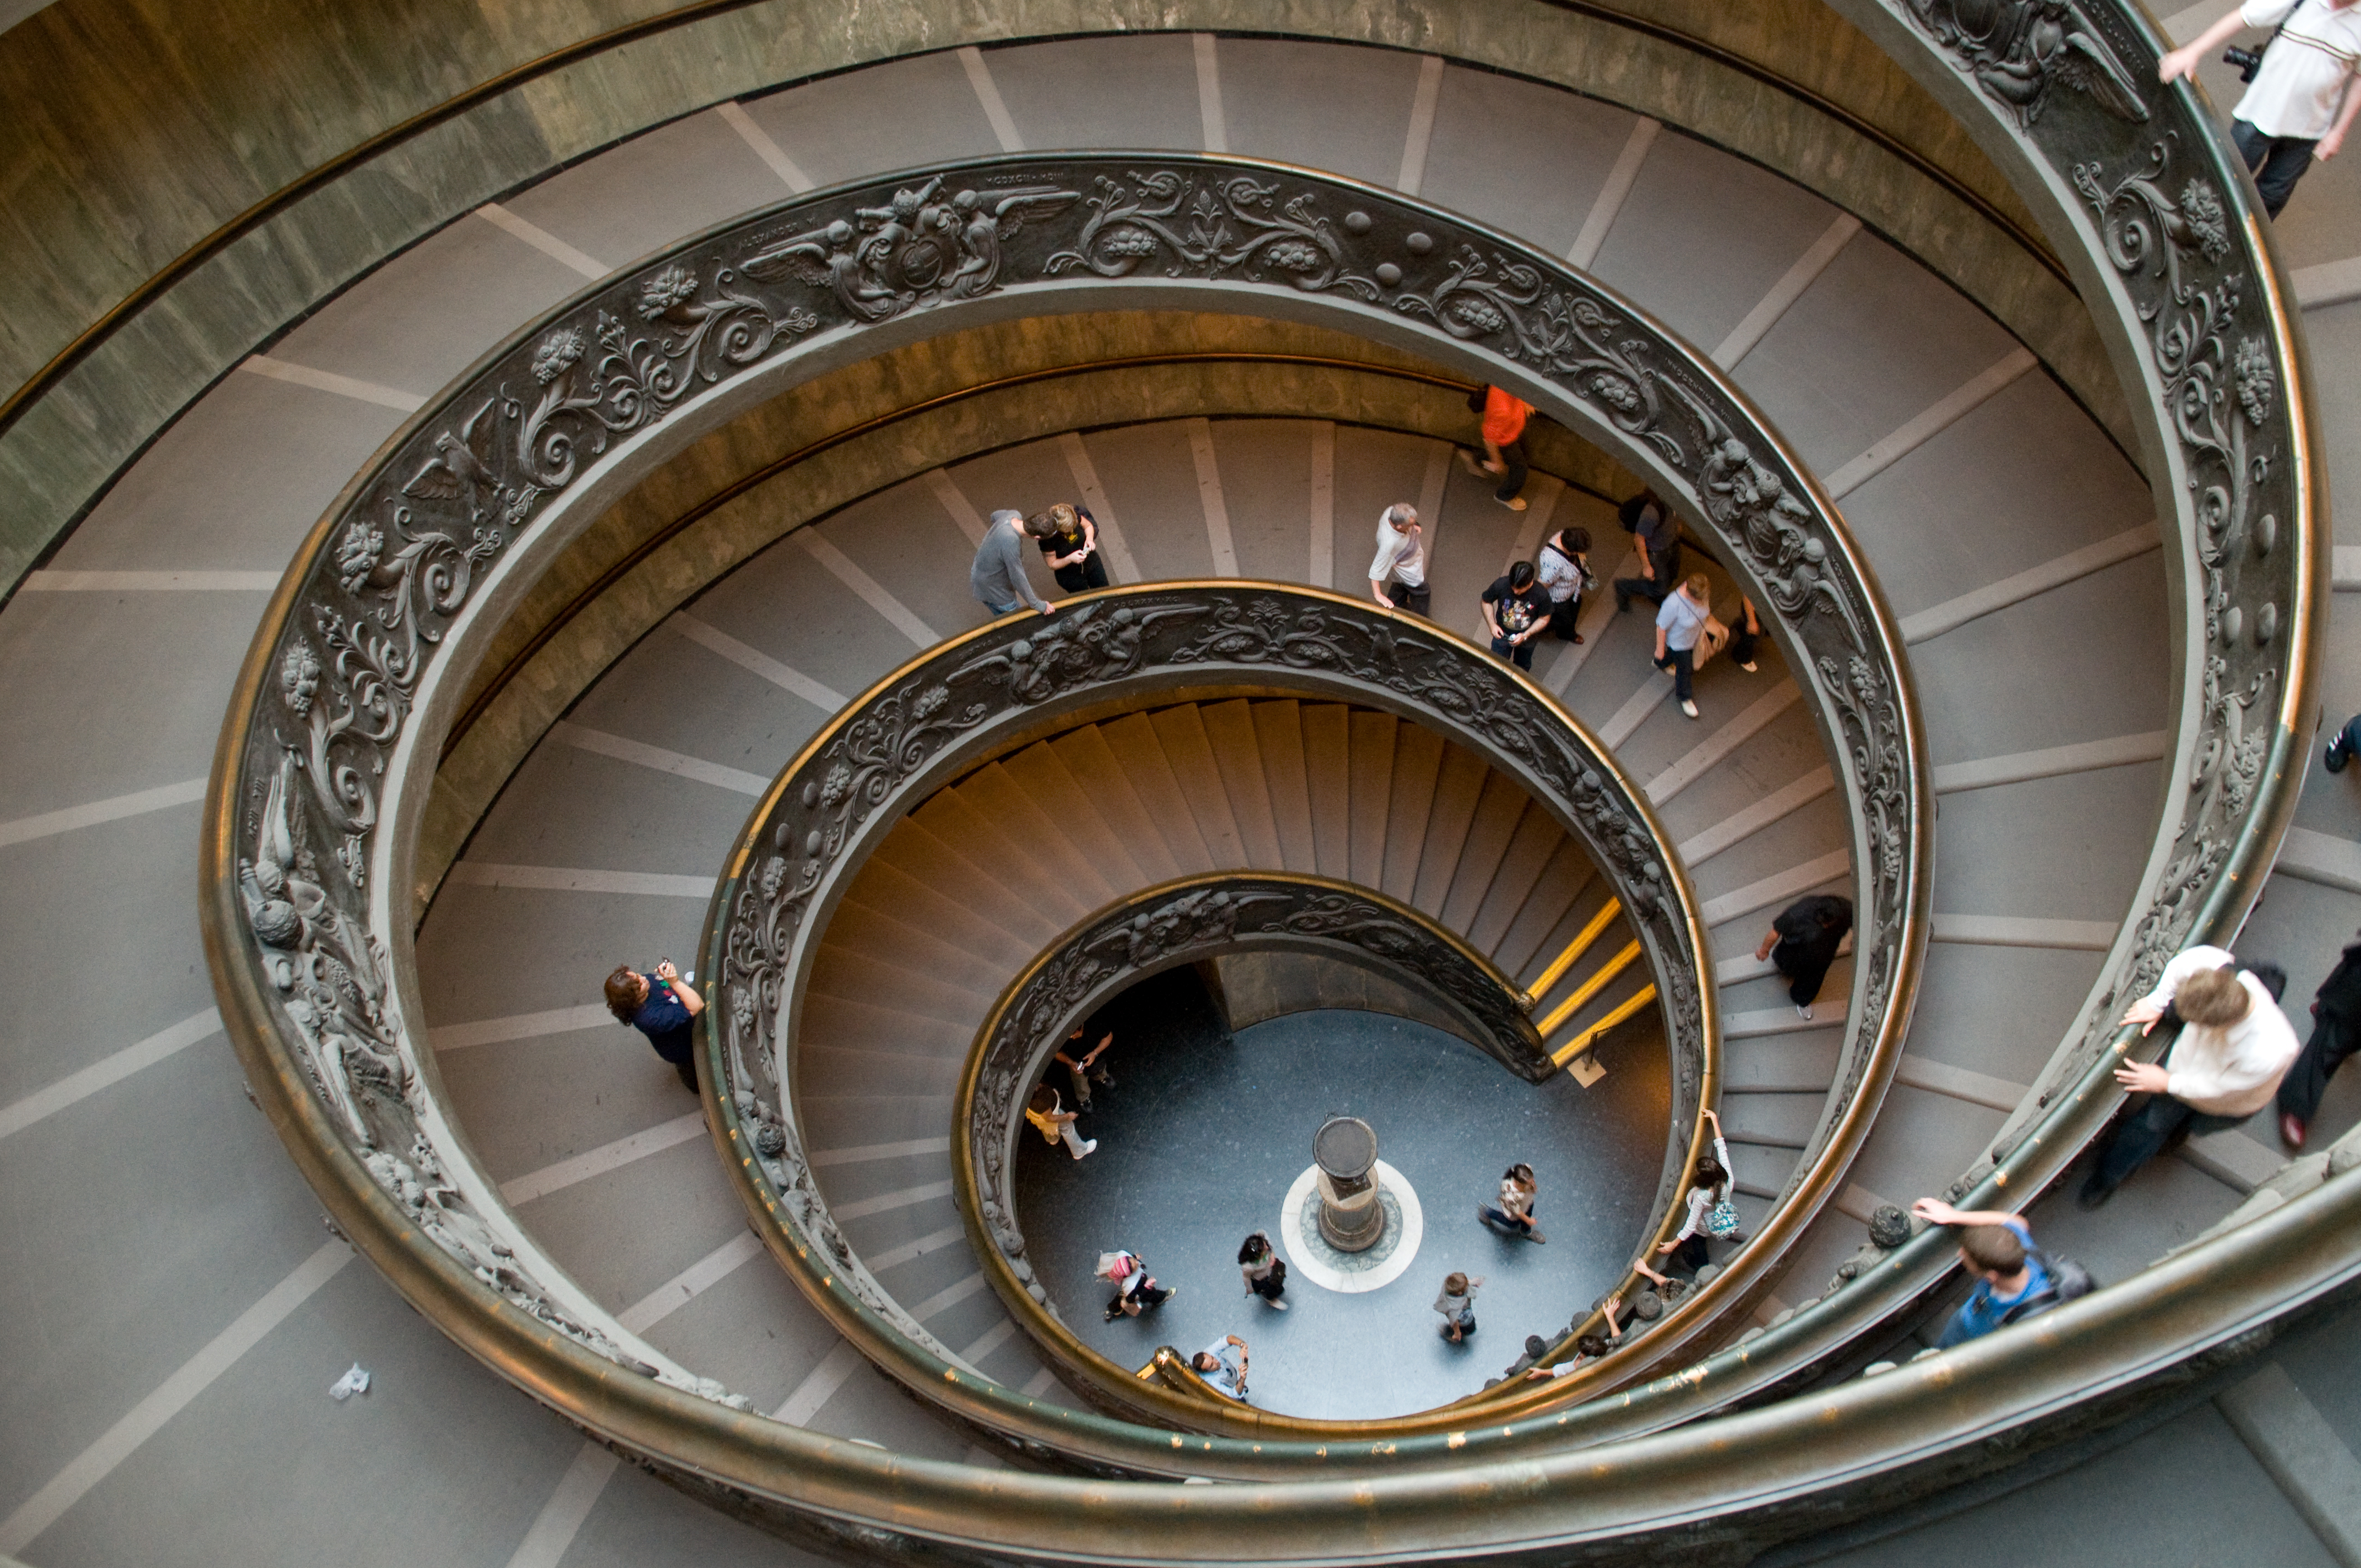 File:Spiral (double Helix) Stairs At The Vatican Museum (2995198130).